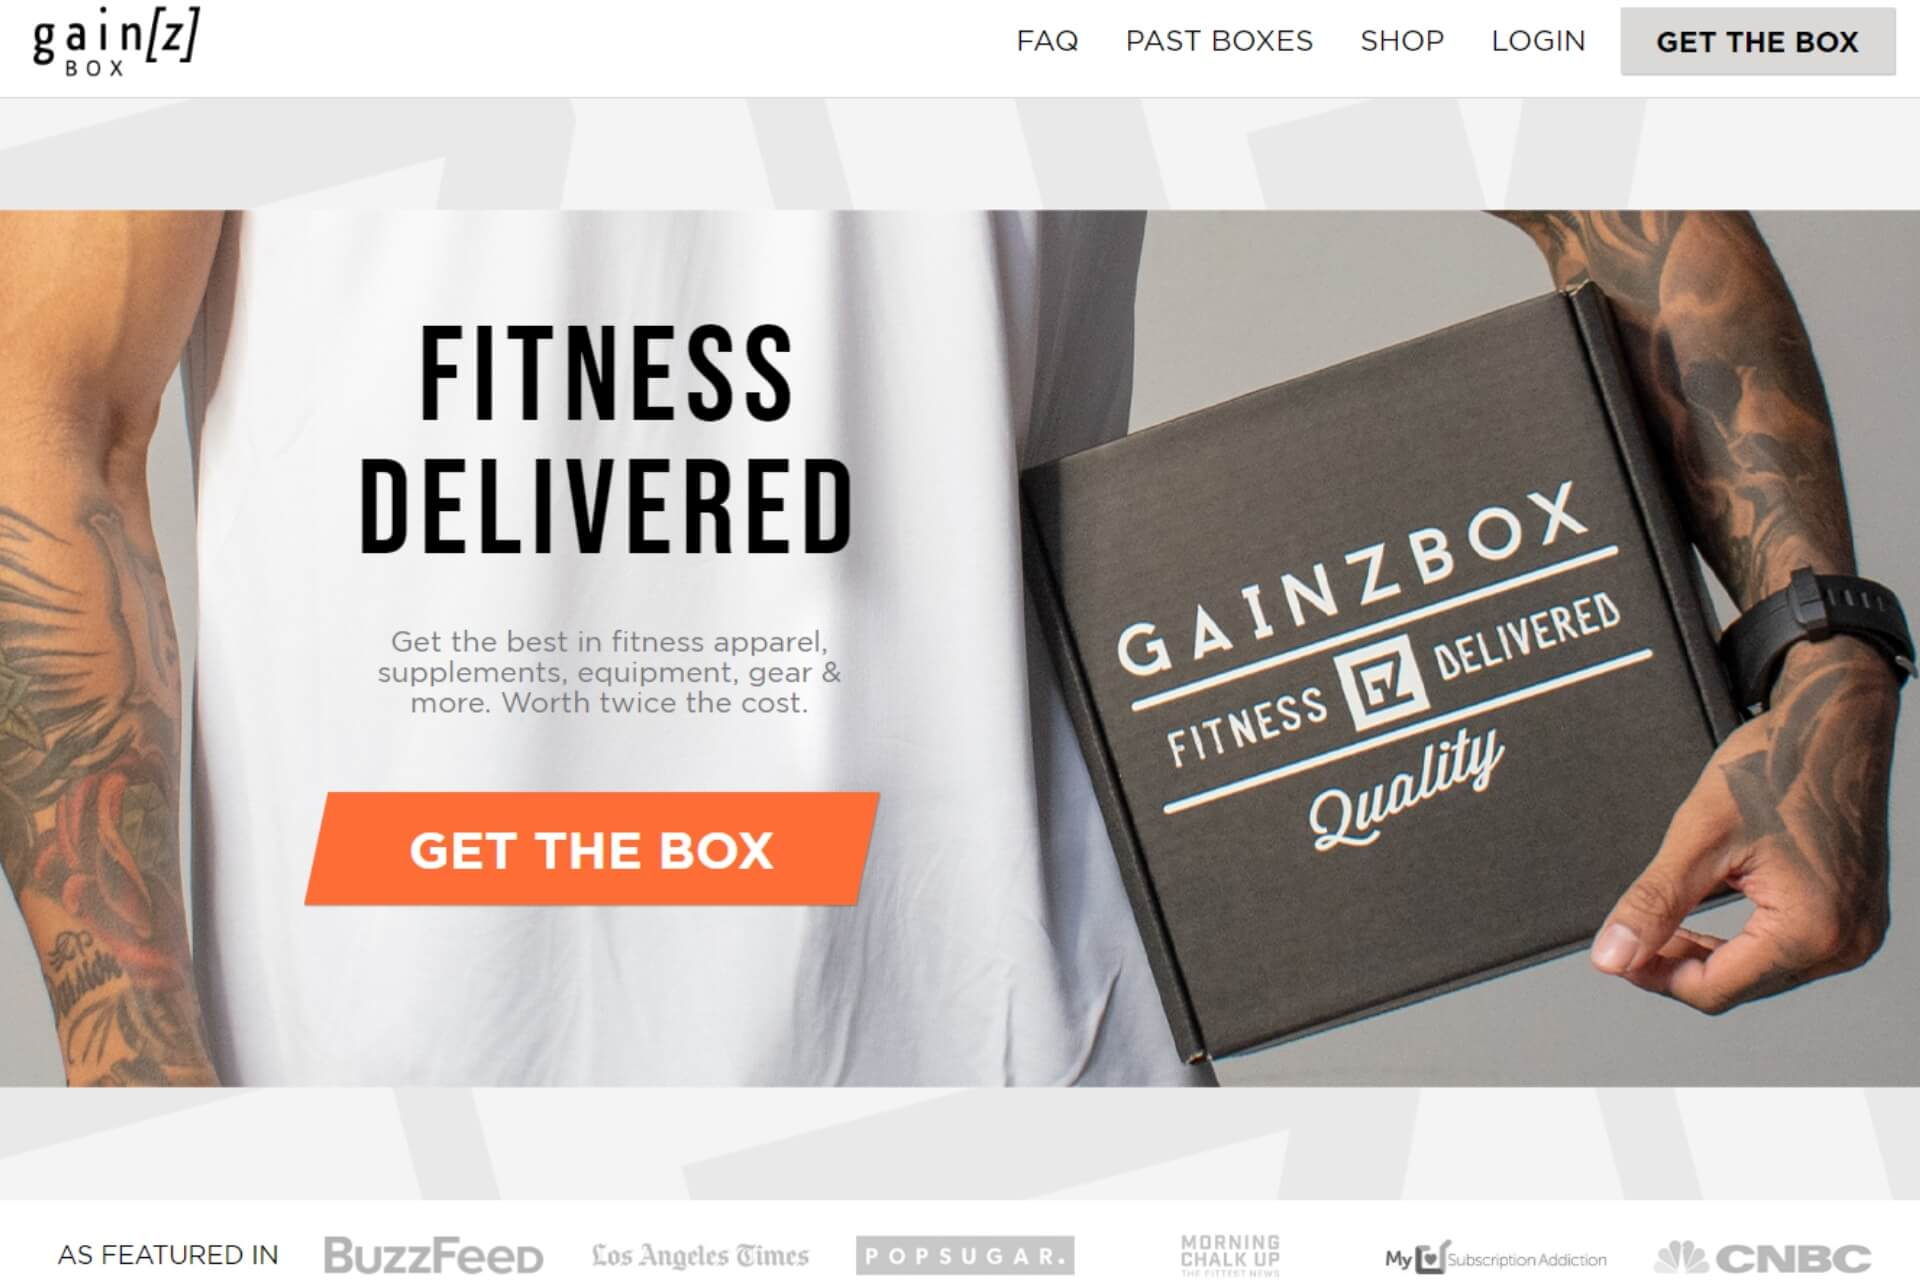 gainz box review - featured (1)